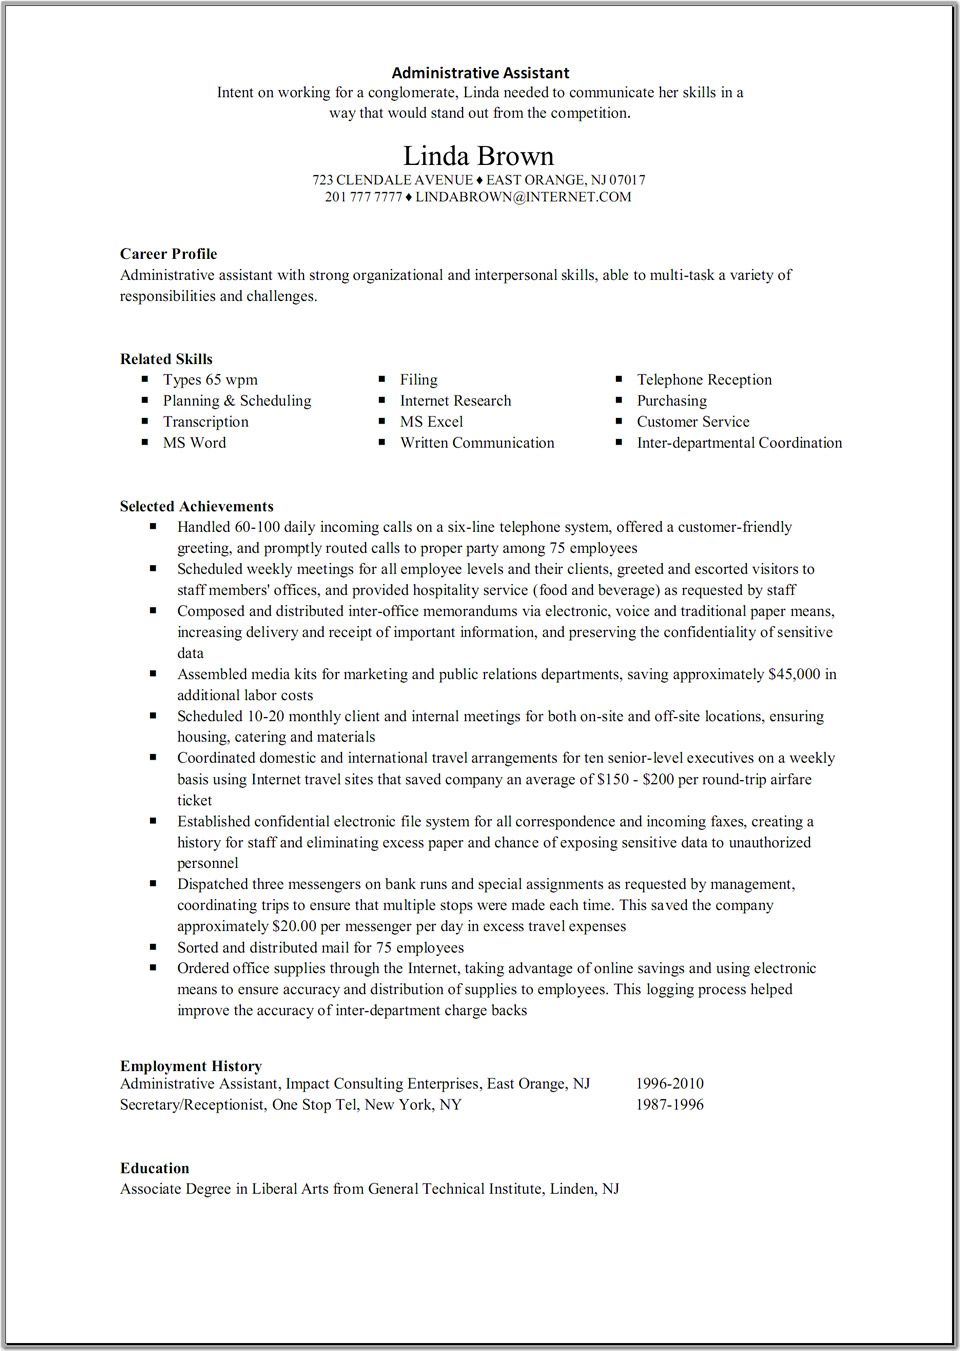 Administrative Assistant Objective Statement Classy Great Administrative Assistant Resumes  Administrative Assistant .